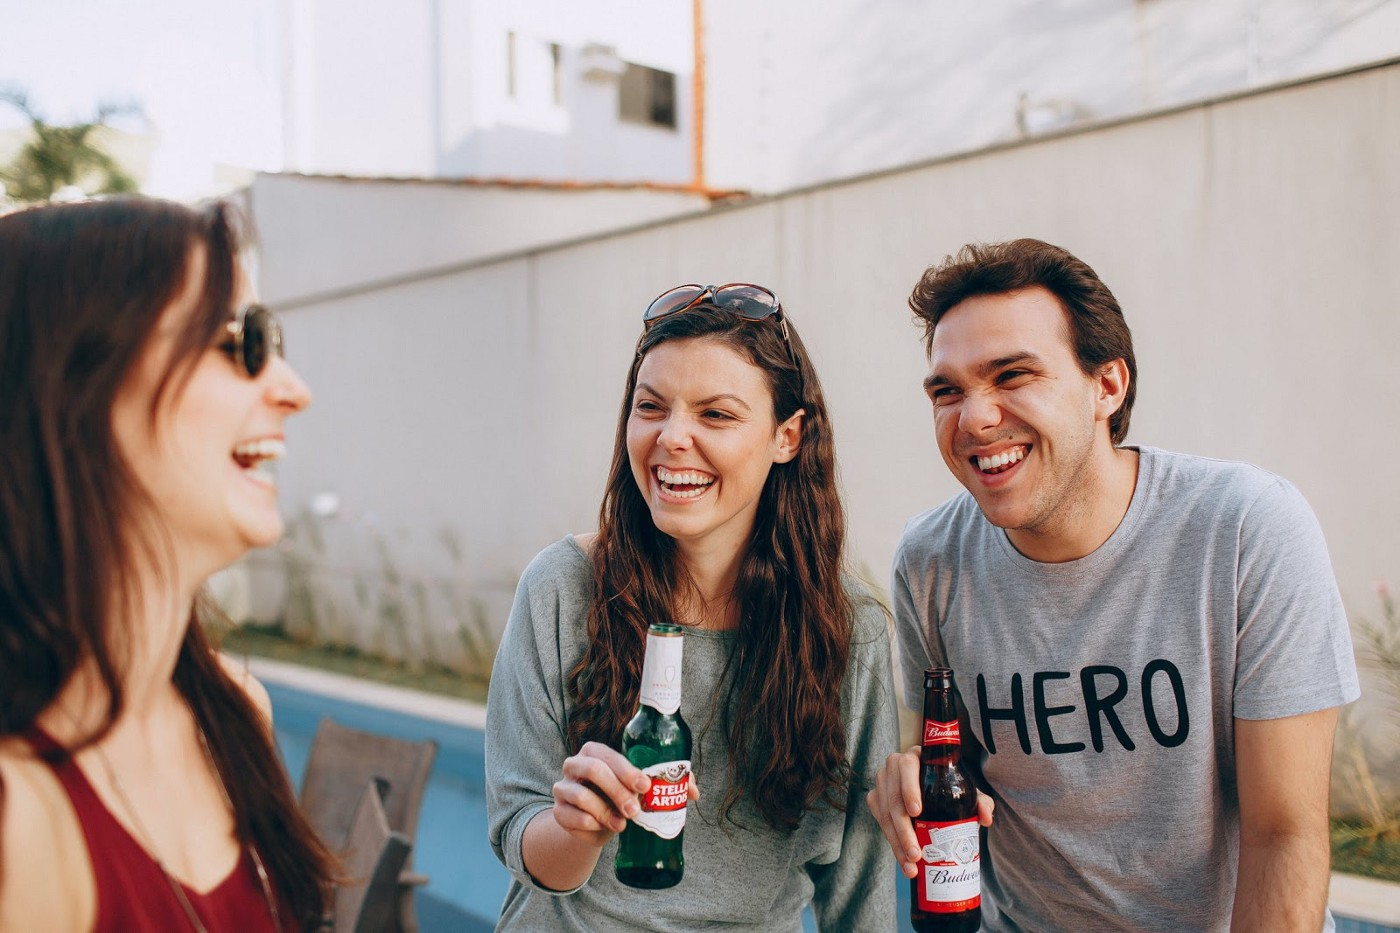 A group of friends drinking and laughing together